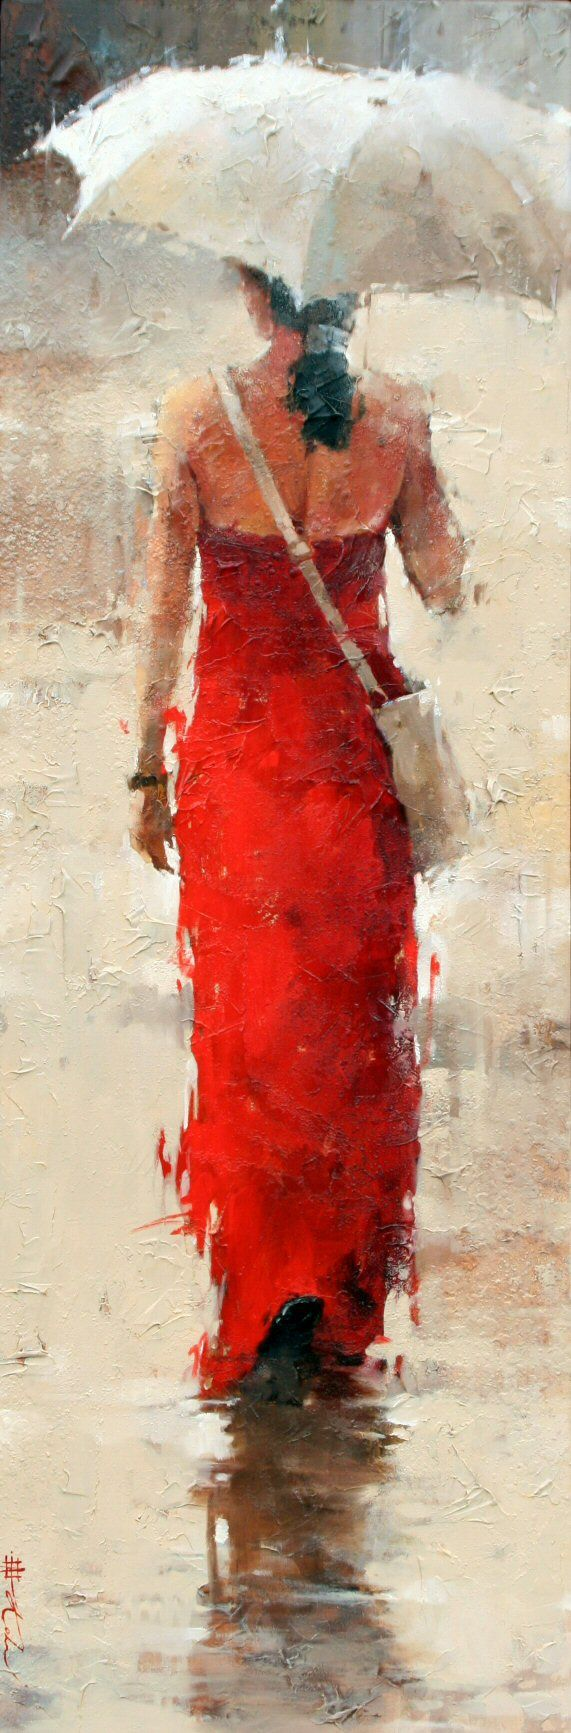 Andre Kohn's work I like. The lady leaning on the rail Craig posted below and the lady with the hat I posted below. Is this leaving the dance studio?  I have to study Impressionism to understand better.